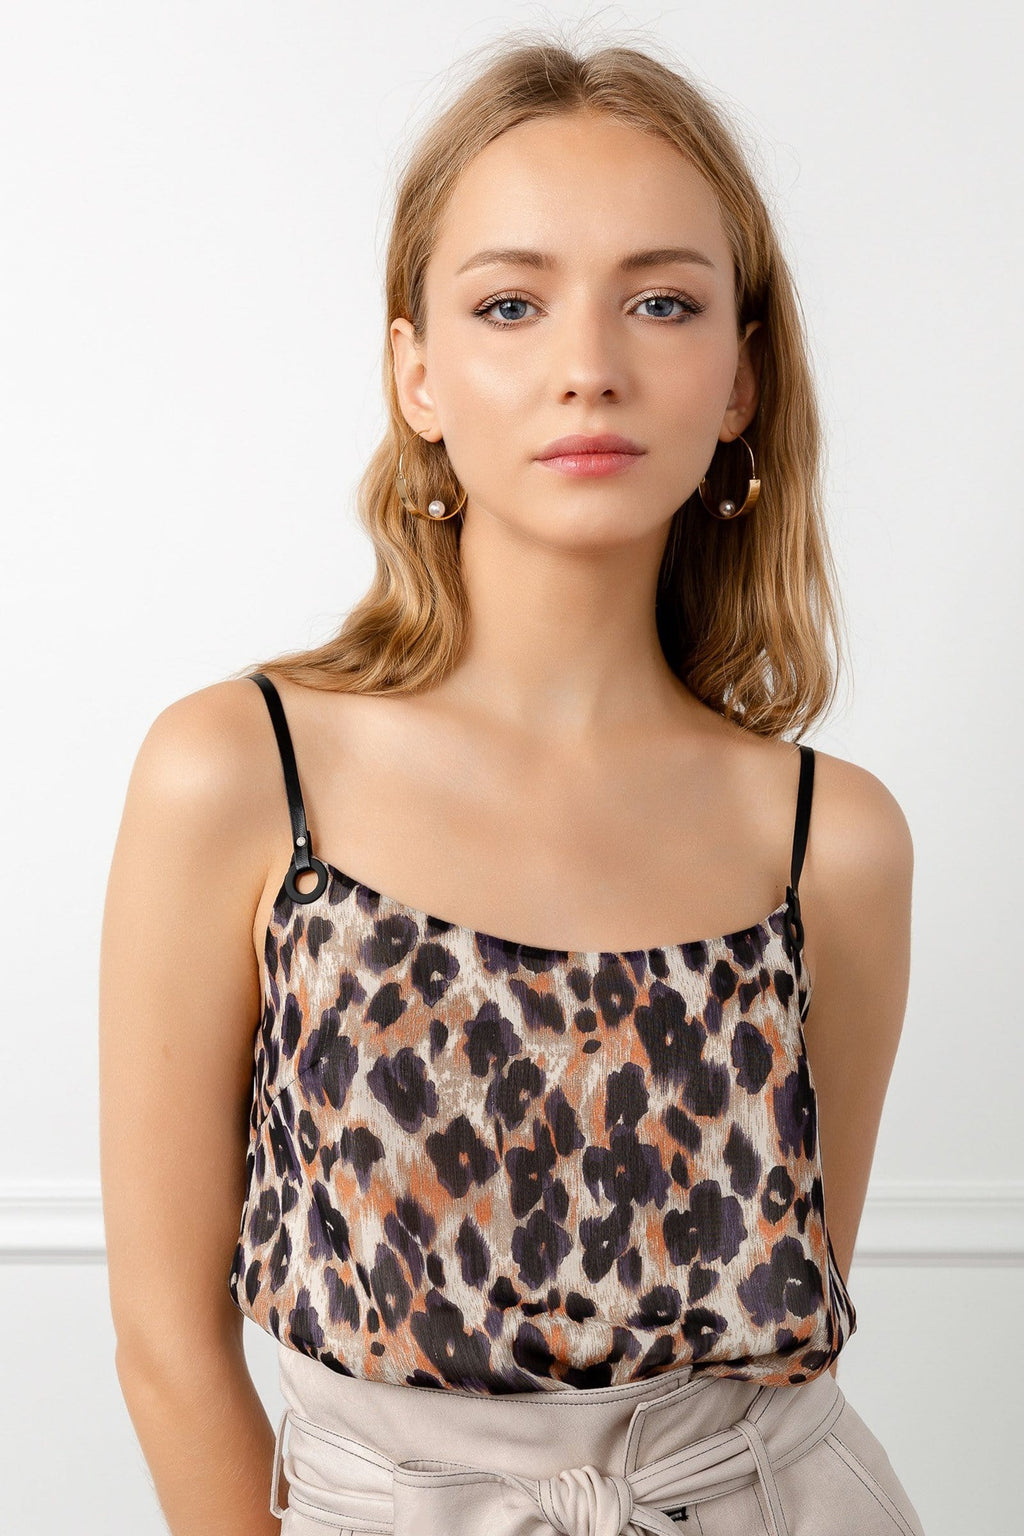 blonde girl wearing brown leopard spaghetti strap top by j.ing